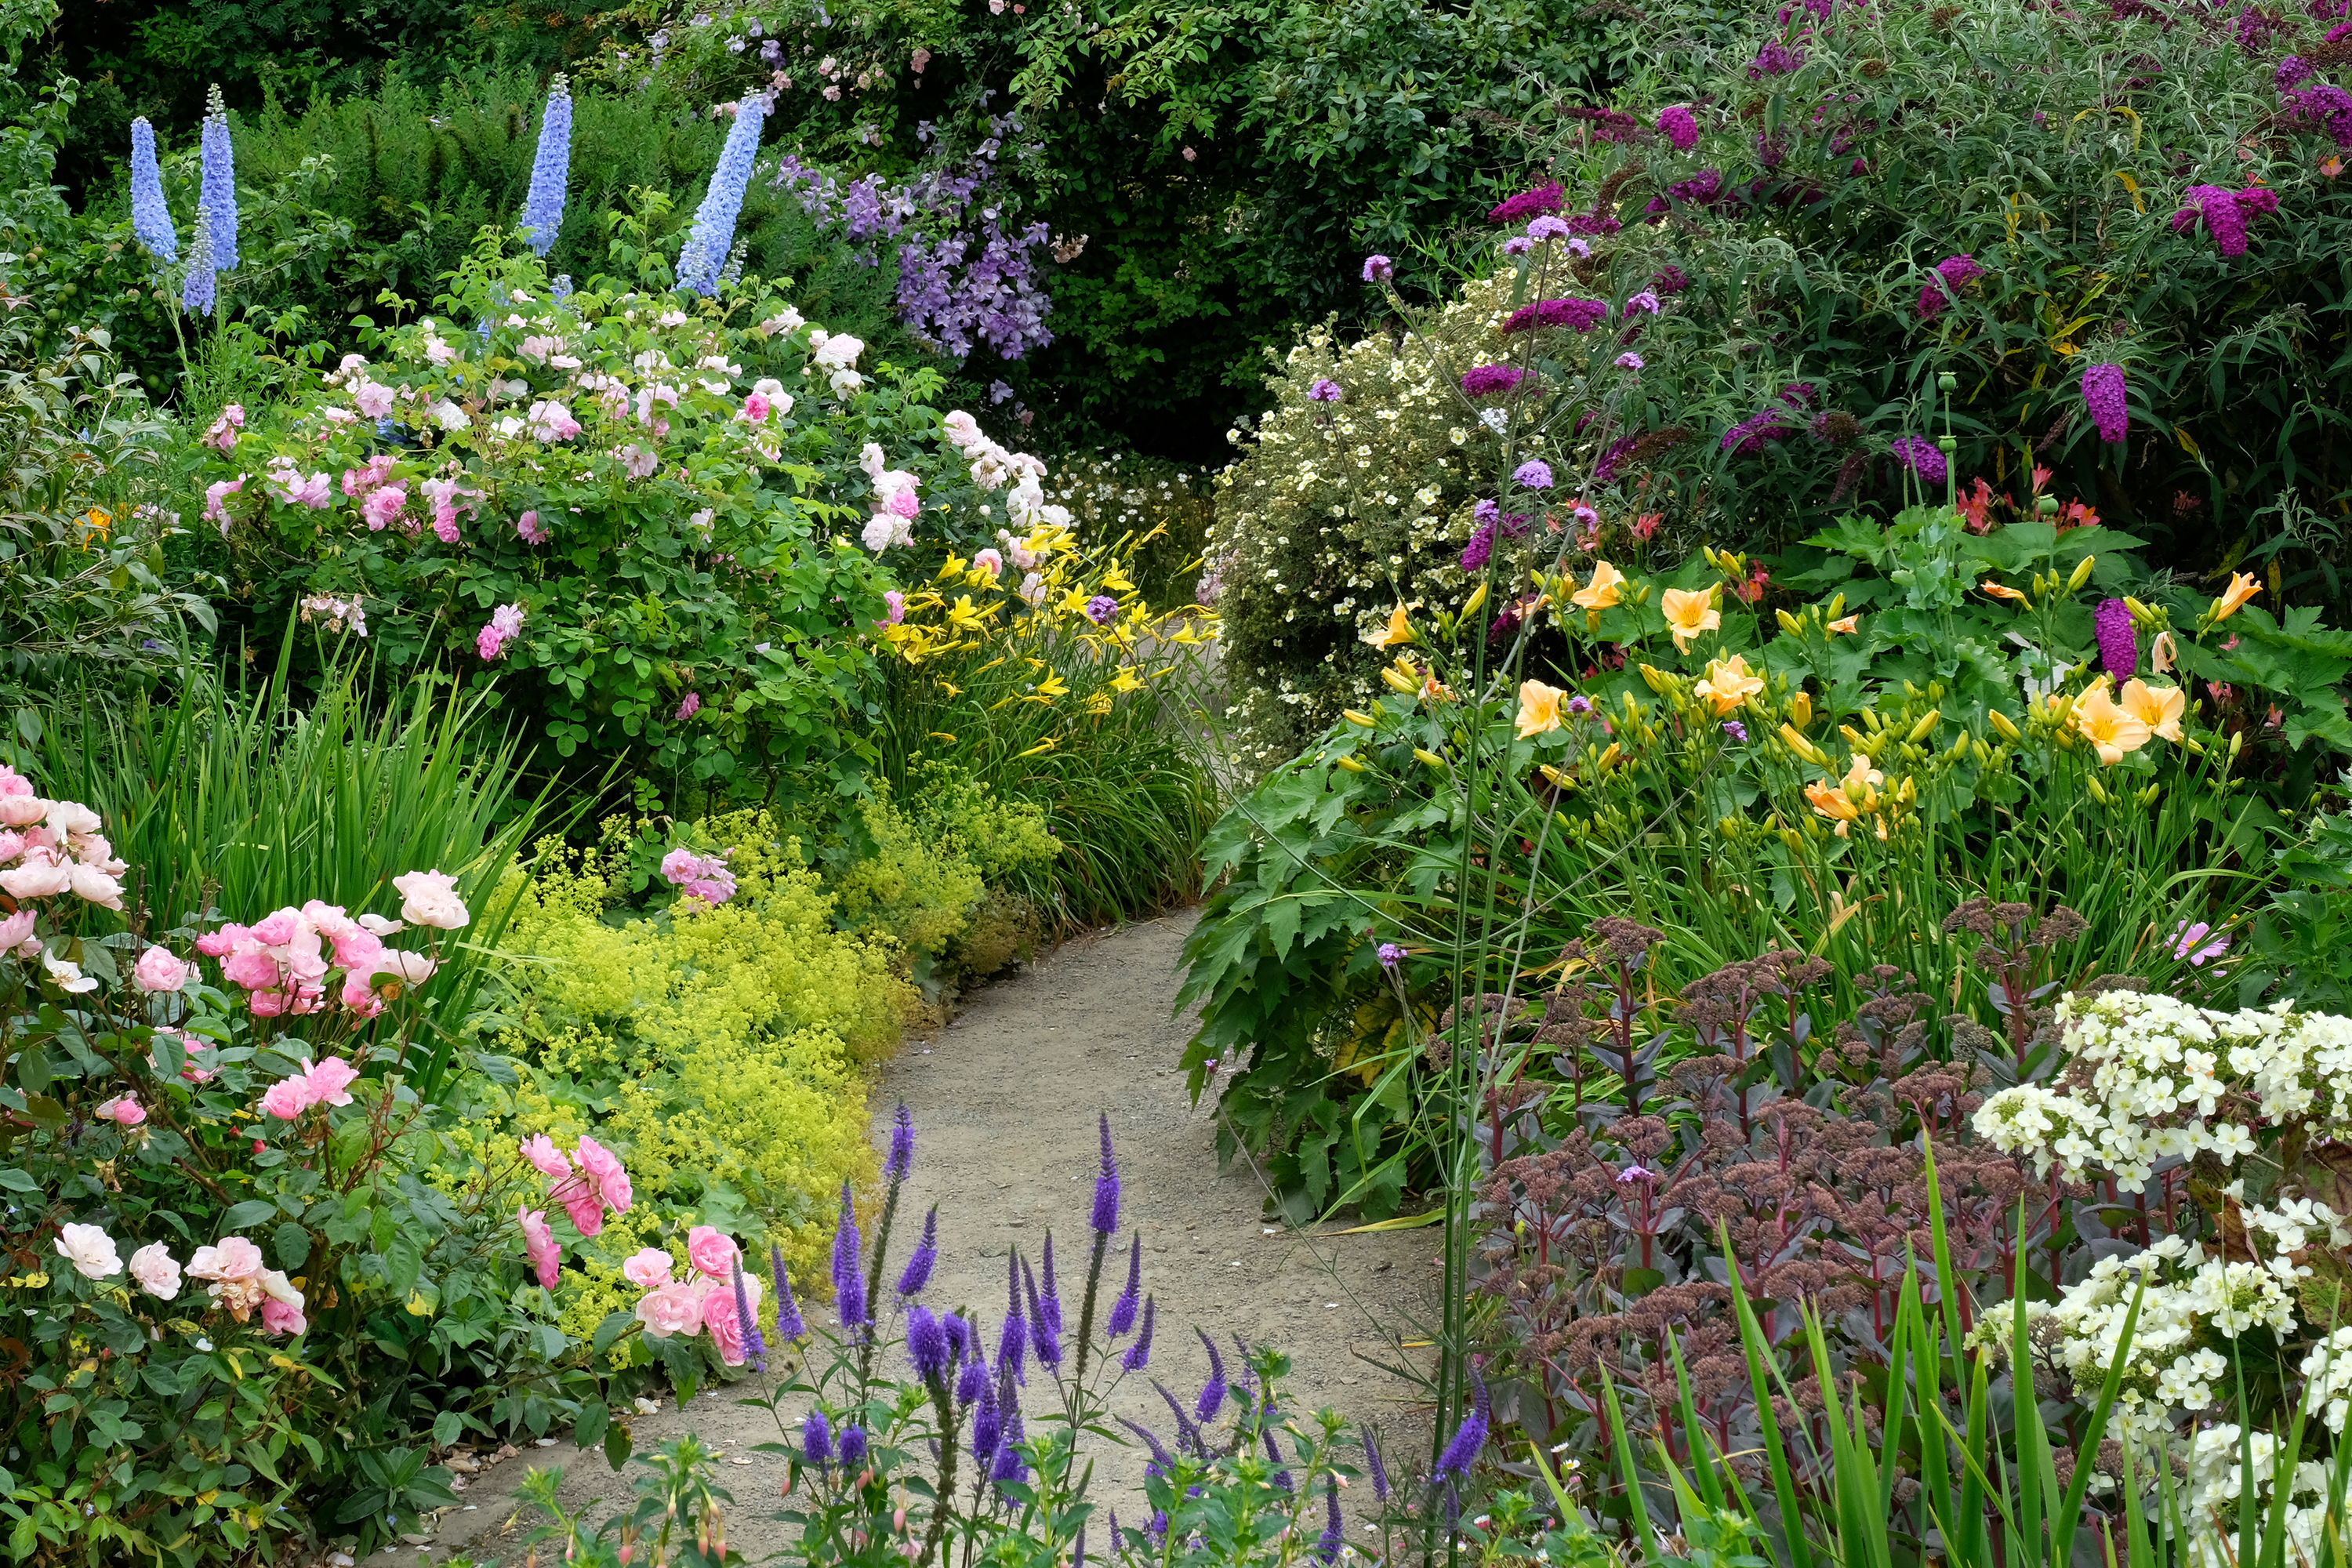 Lush garden with a variety of flowers.